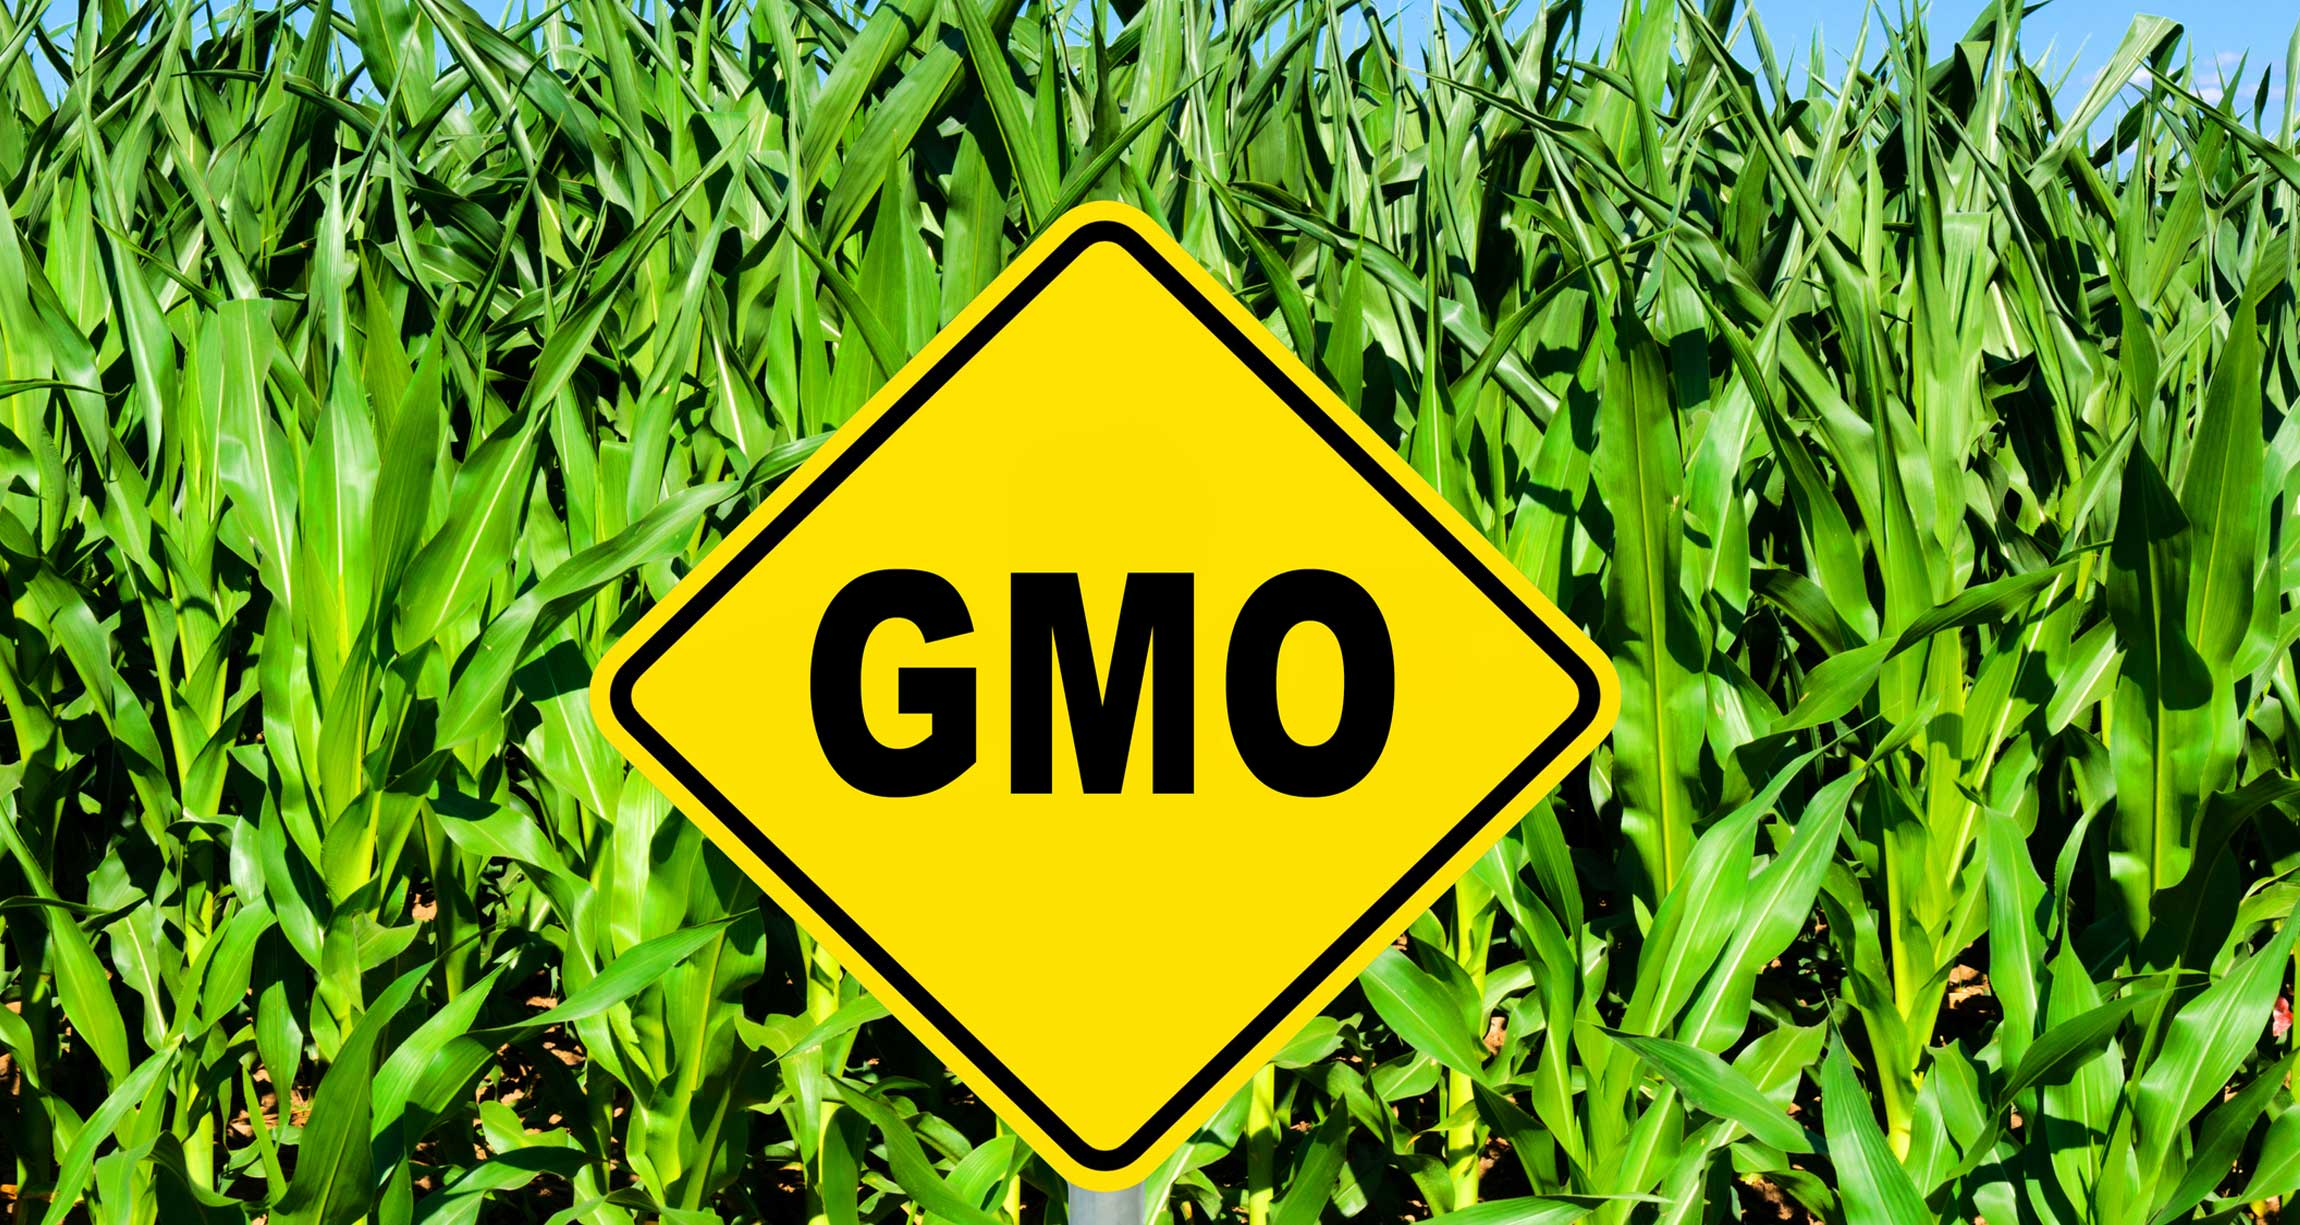 GMO sign in front of corn field